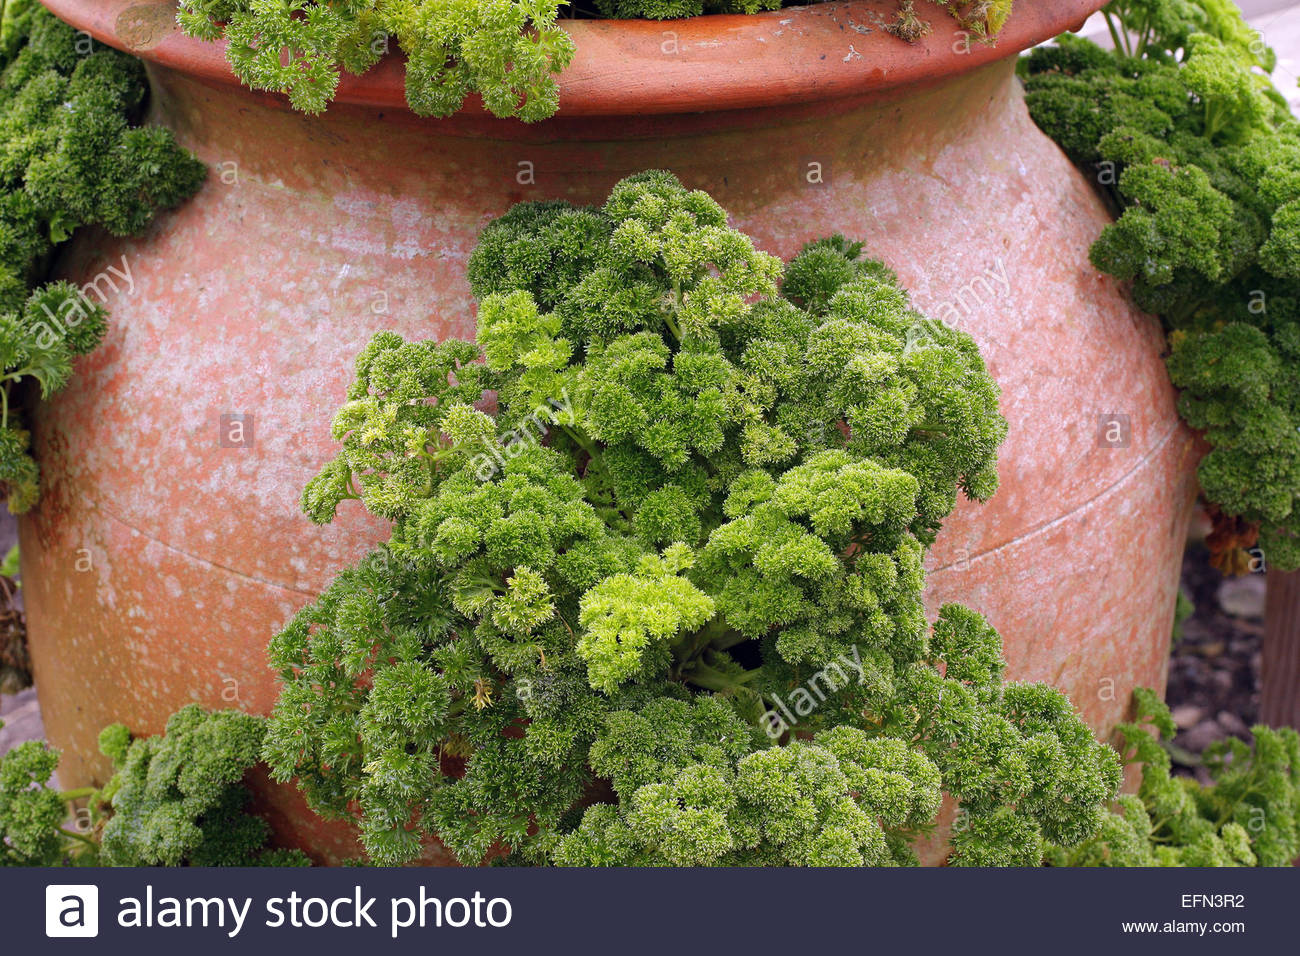 parsley growing in a terracotta strawberry pot